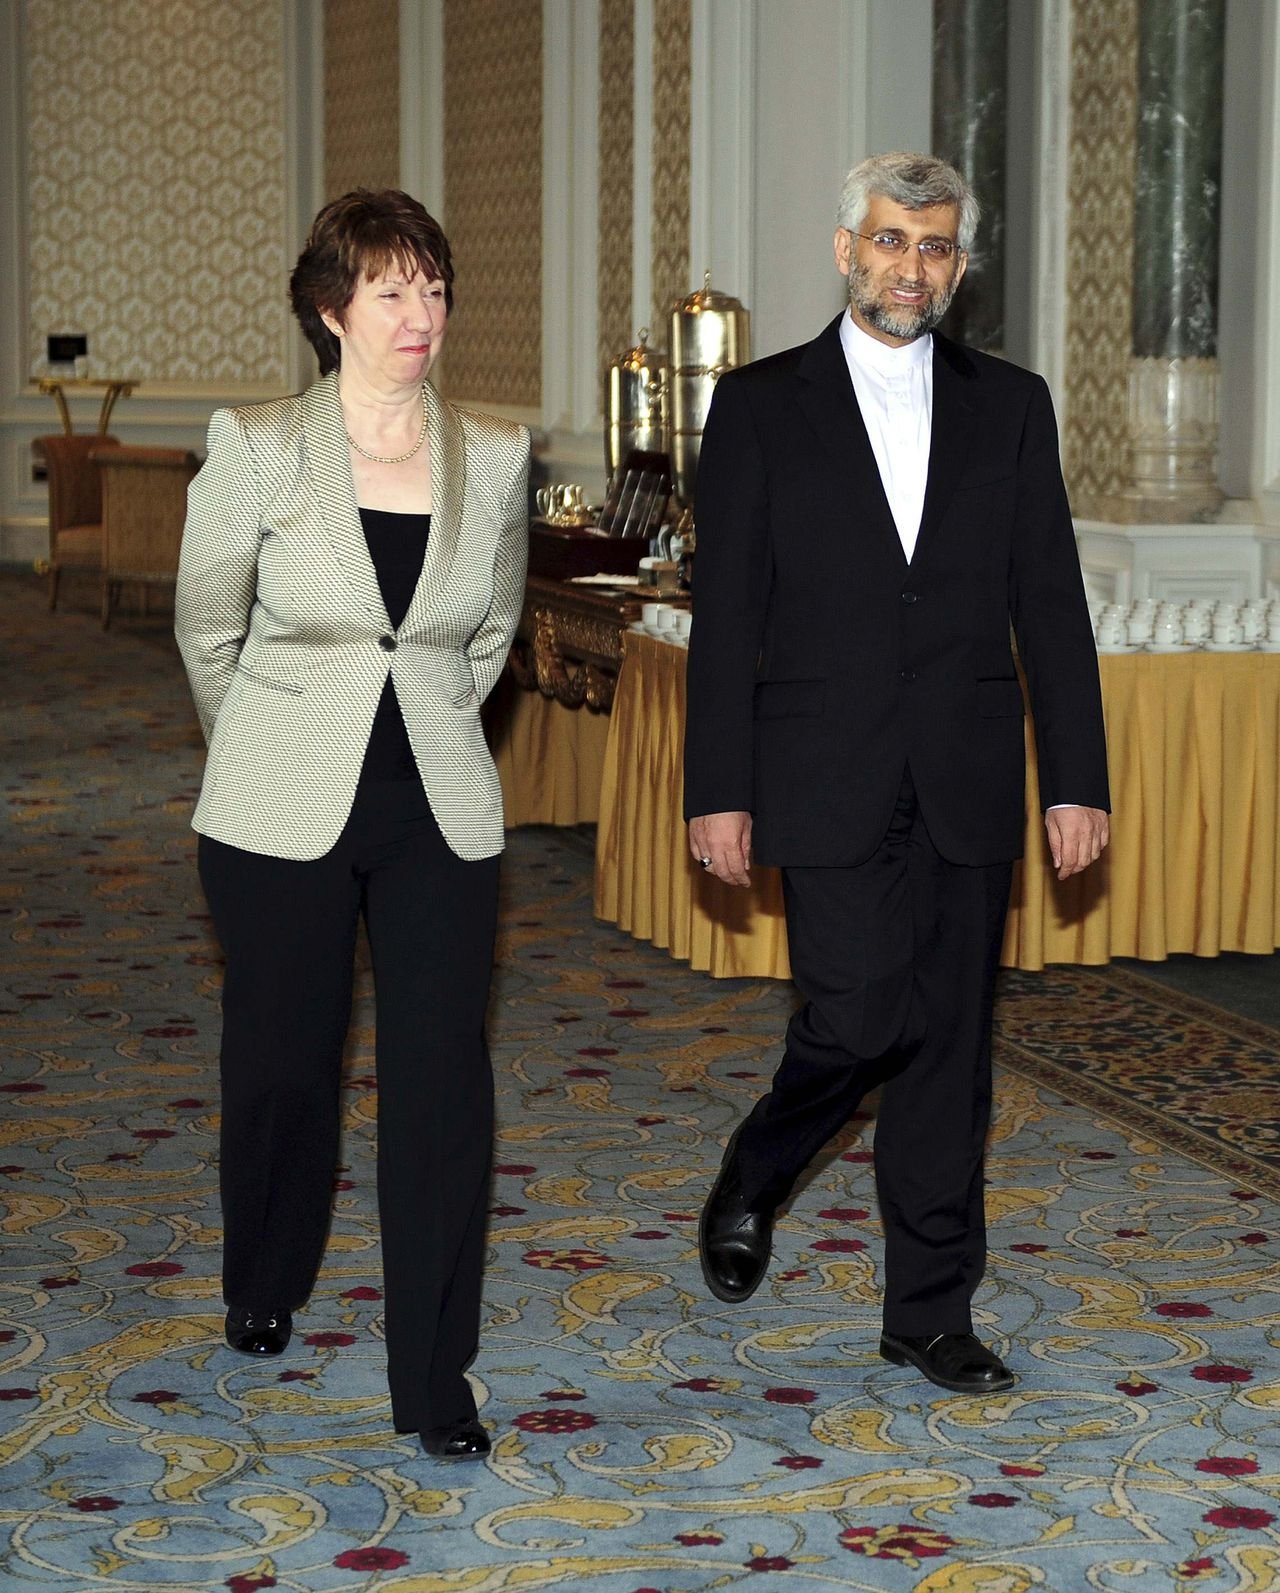 Iran's chief nuclear negotiator Saeed Jalili (R) and European Union foreign policy chief Catherine Ashton arrive for talks at the Ciragan Palace in Istanbul January 21, 2011. Iran gave no sign of making concessions to world powers trying to persuade it to rein in its nuclear programme at talks which began in Istanbul on Friday. REUTERS/Salih Zeki Fazlioglu/Anatolian/Pool (TURKEY - Tags: POLITICS) THIS IMAGE HAS BEEN SUPPLIED BY A THIRD PARTY. IT IS DISTRIBUTED, EXACTLY AS RECEIVED BY REUTERS, AS A SERVICE TO CLIENTS